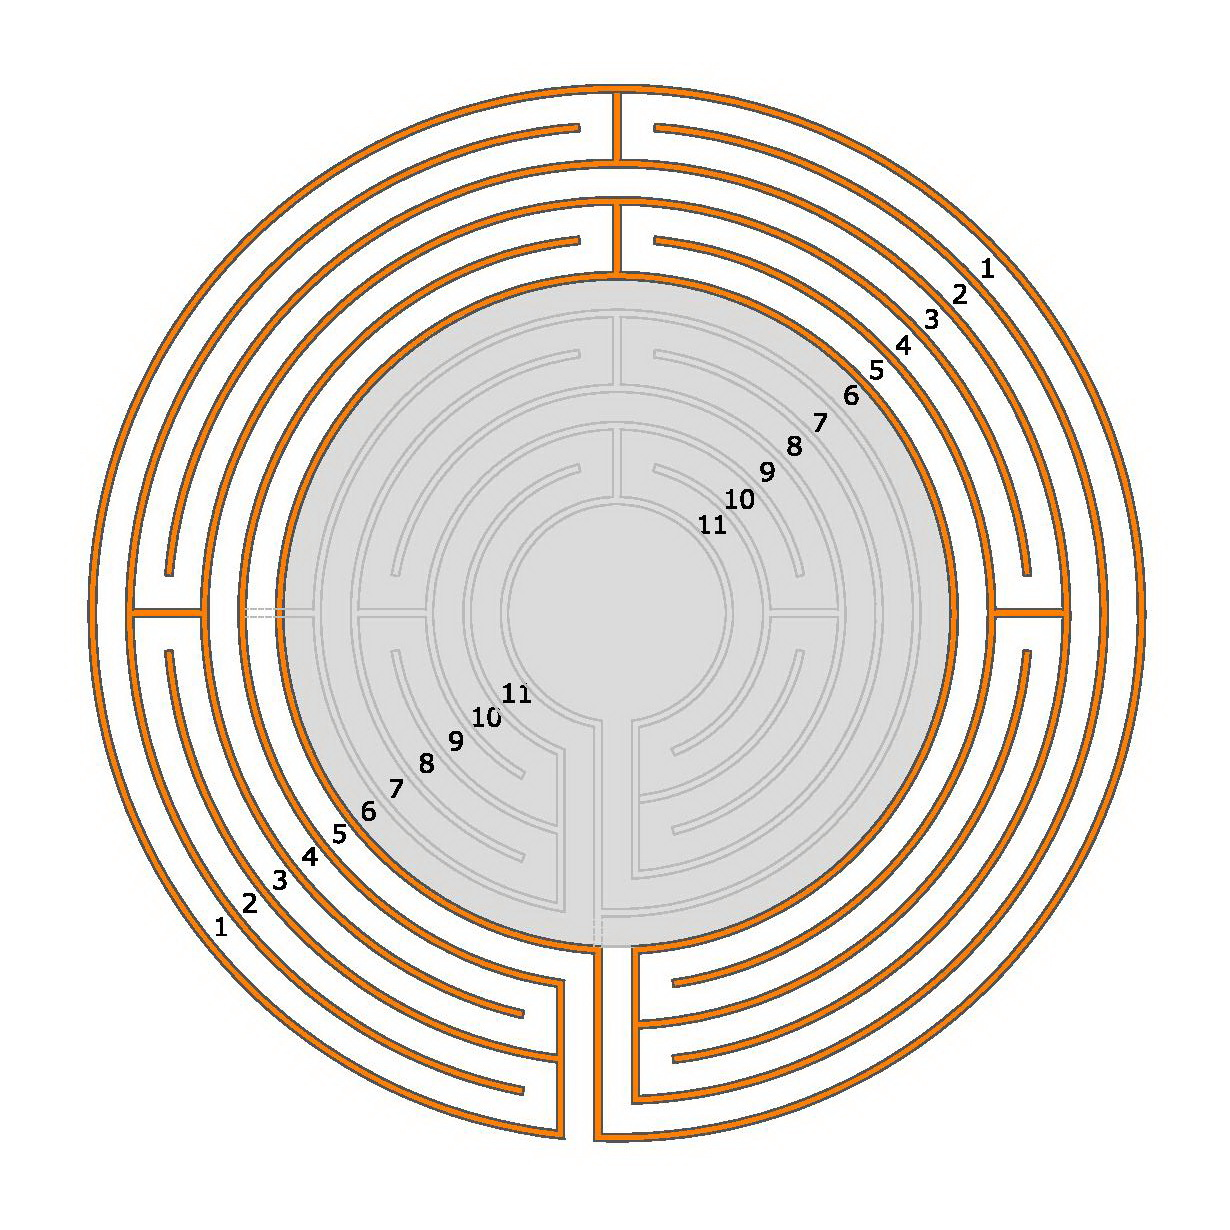 How to make a 5-circuit Classical Labyrinth from a 5-circuit ...